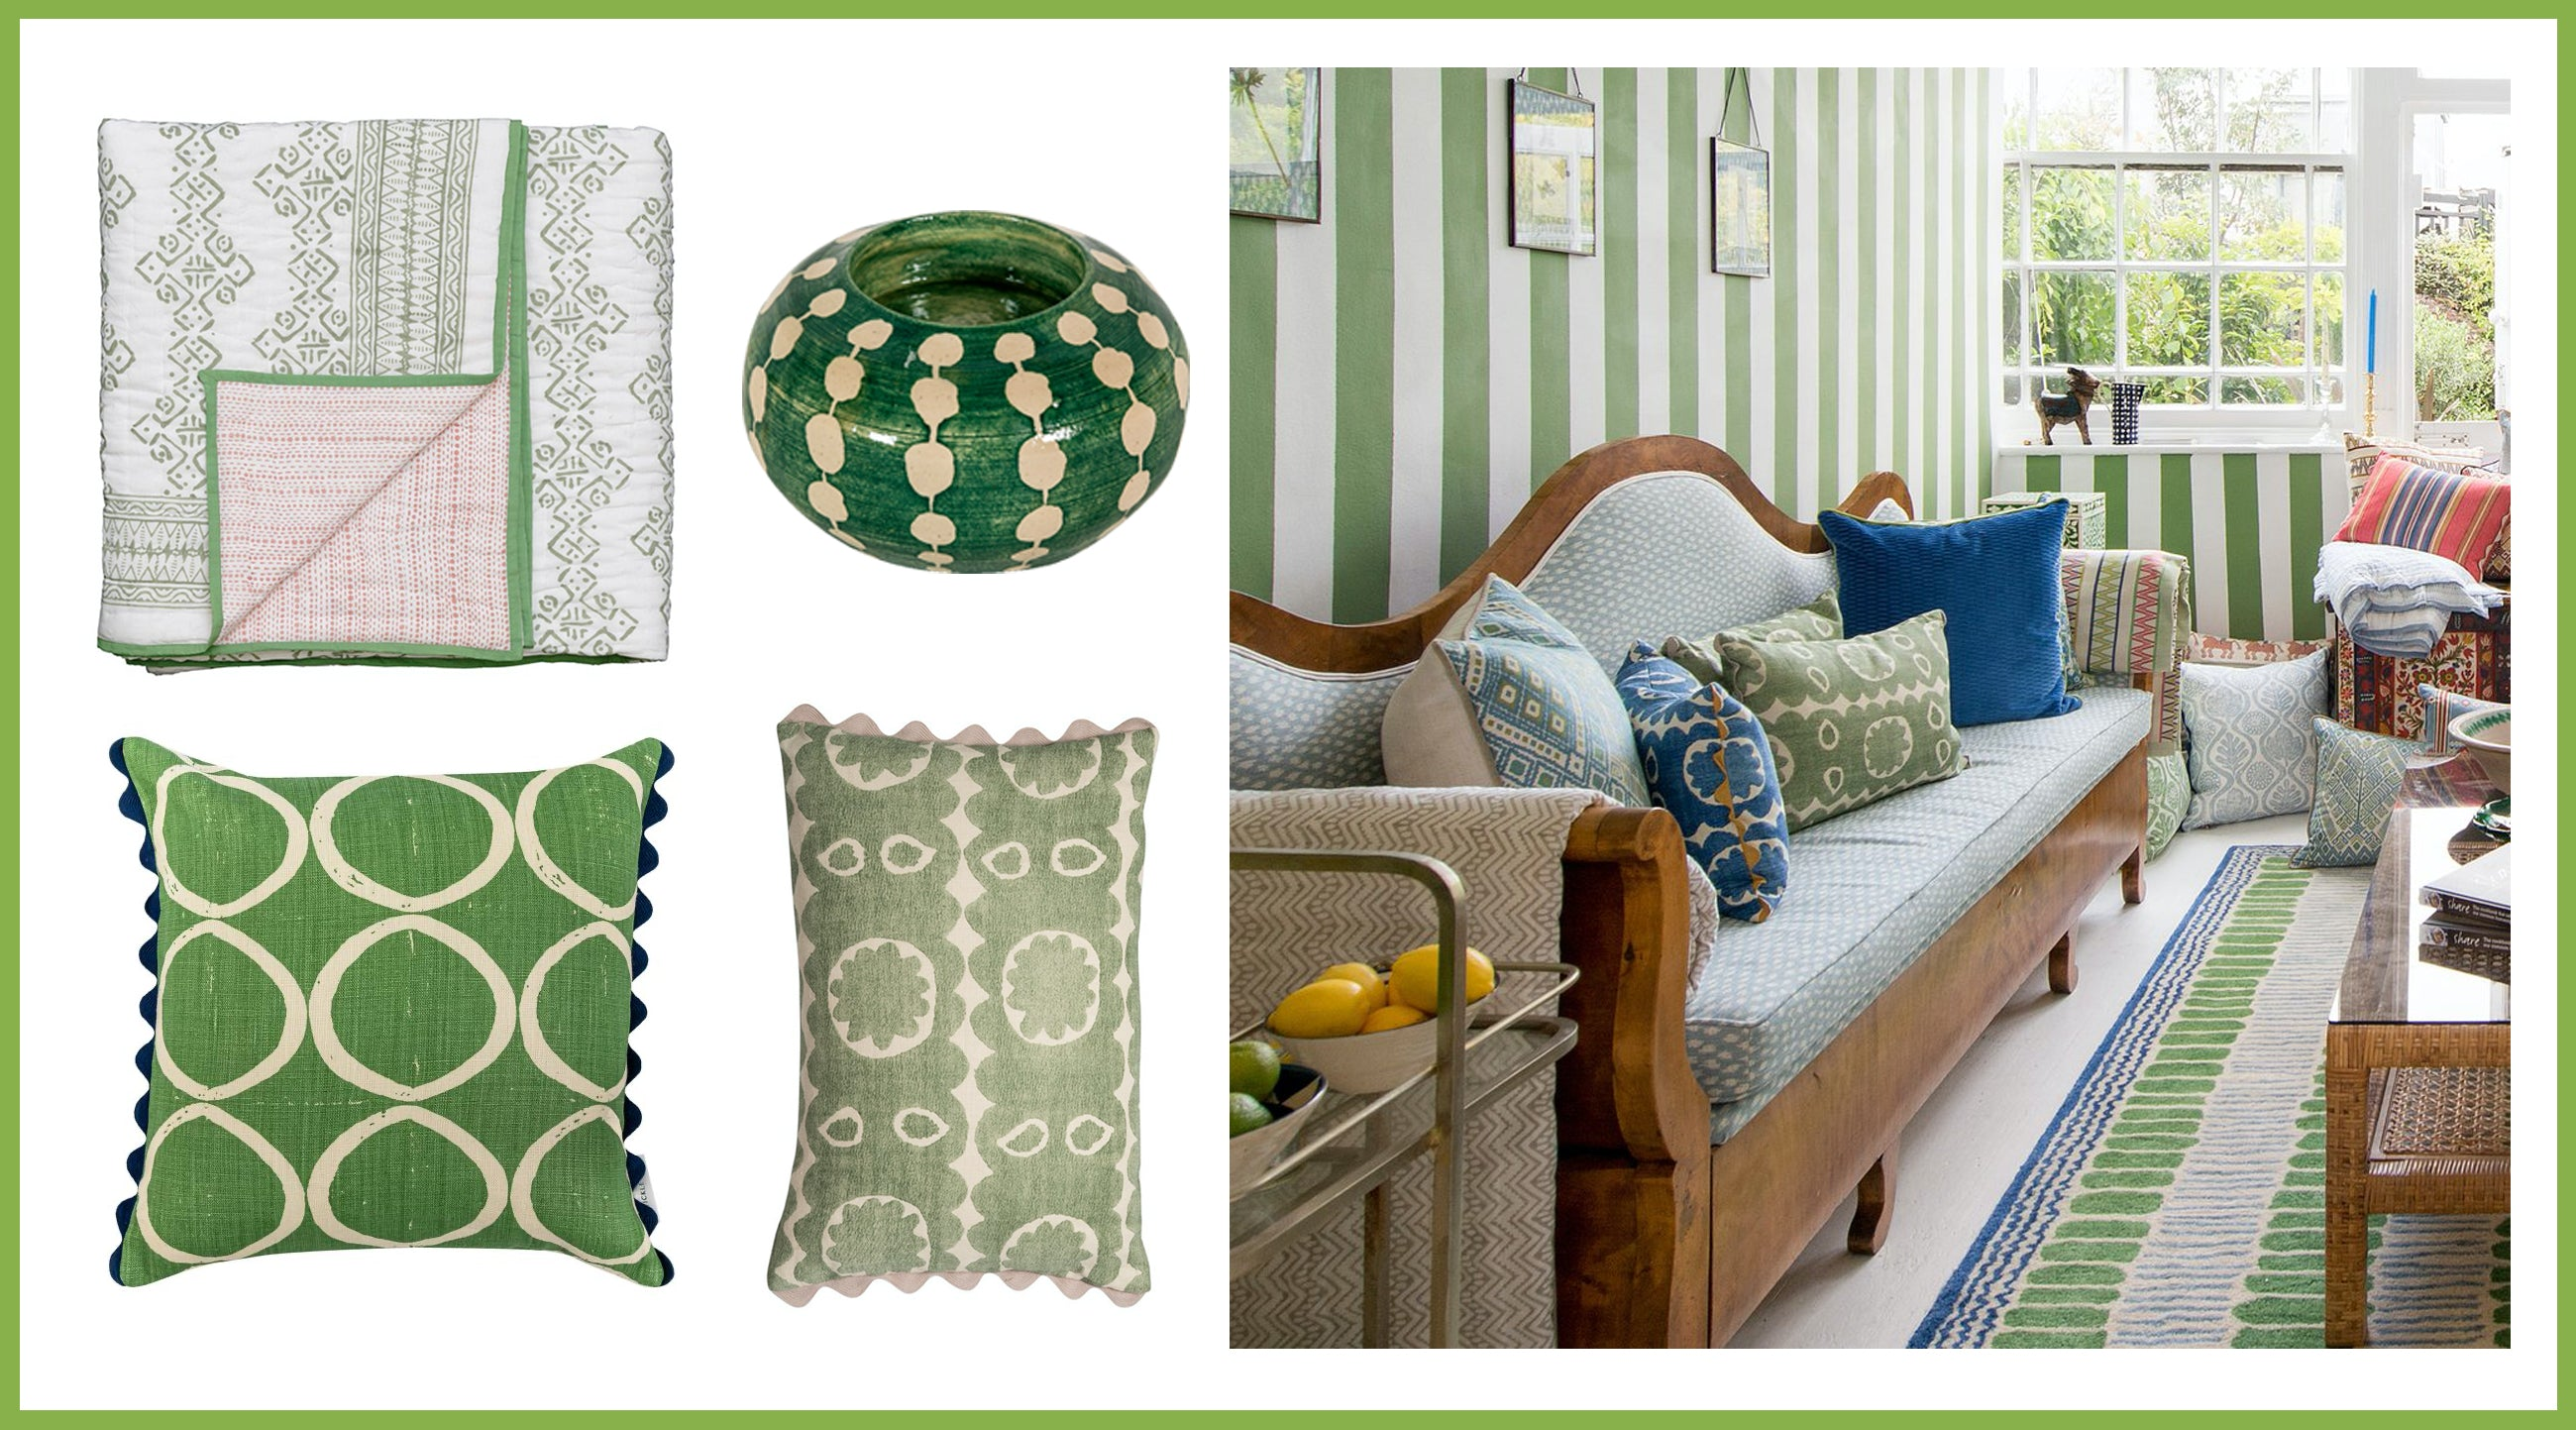 wicklewood green patterned cushions, reversible quilts and hand thrown ceramics